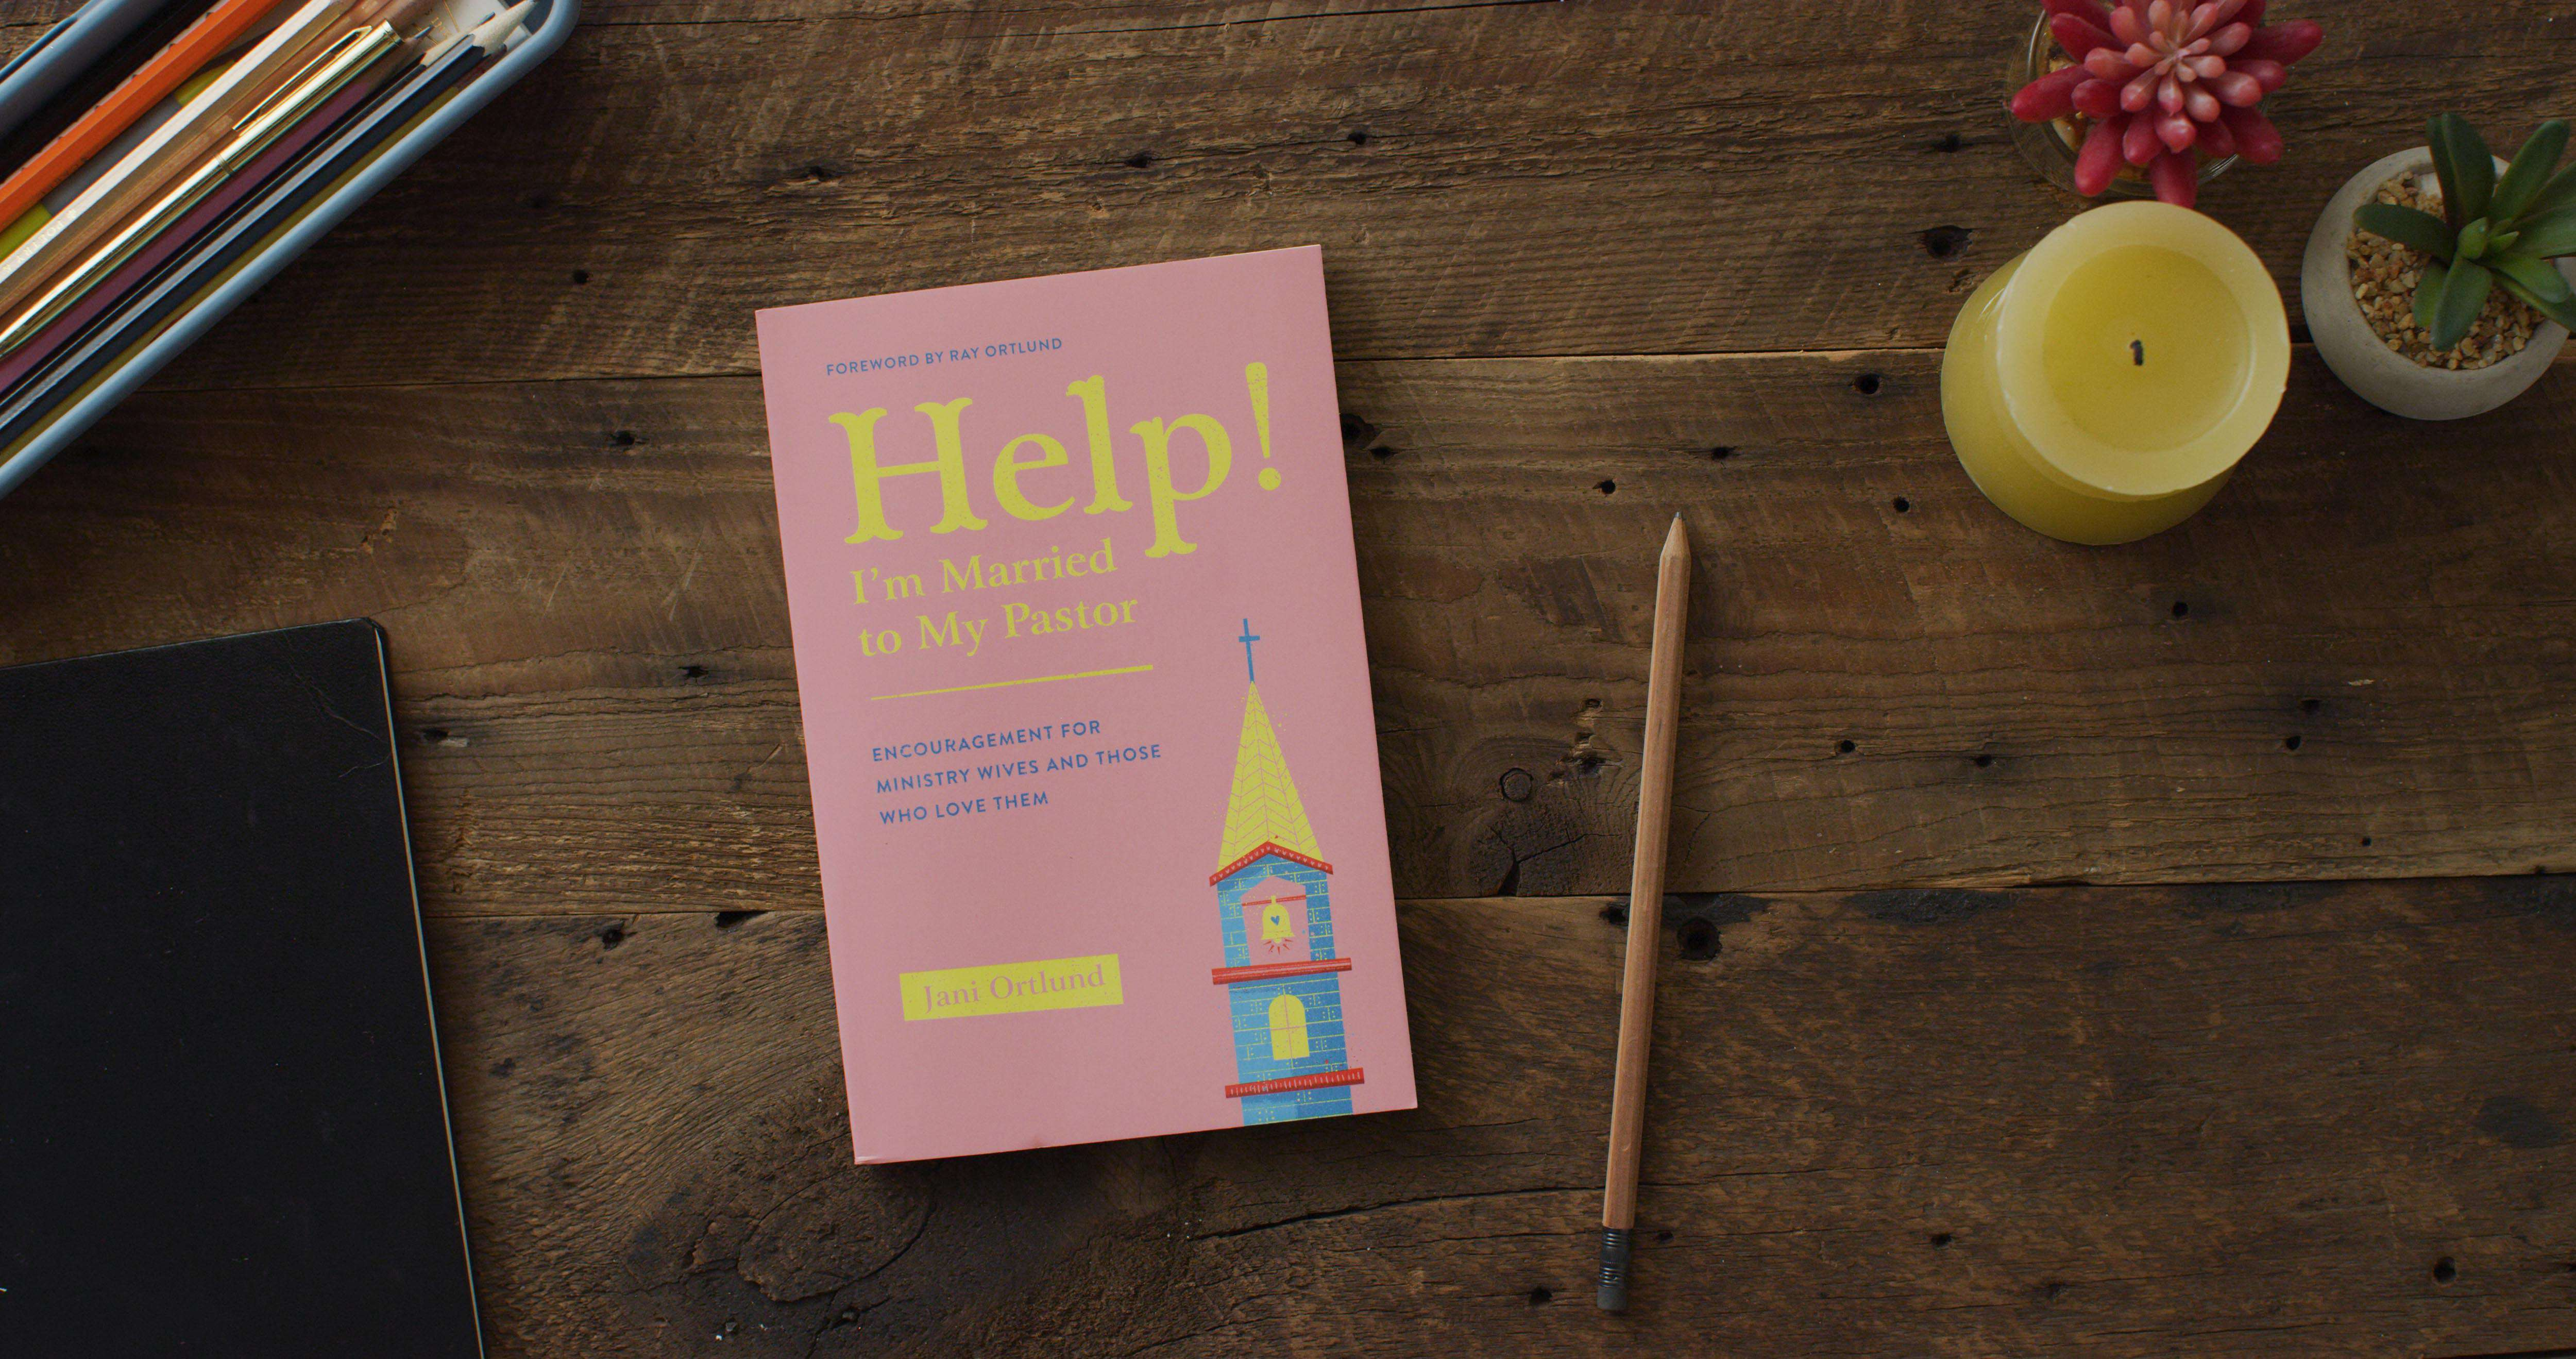 'Help! I'm Married to My Pastor' by Jani Ortlund